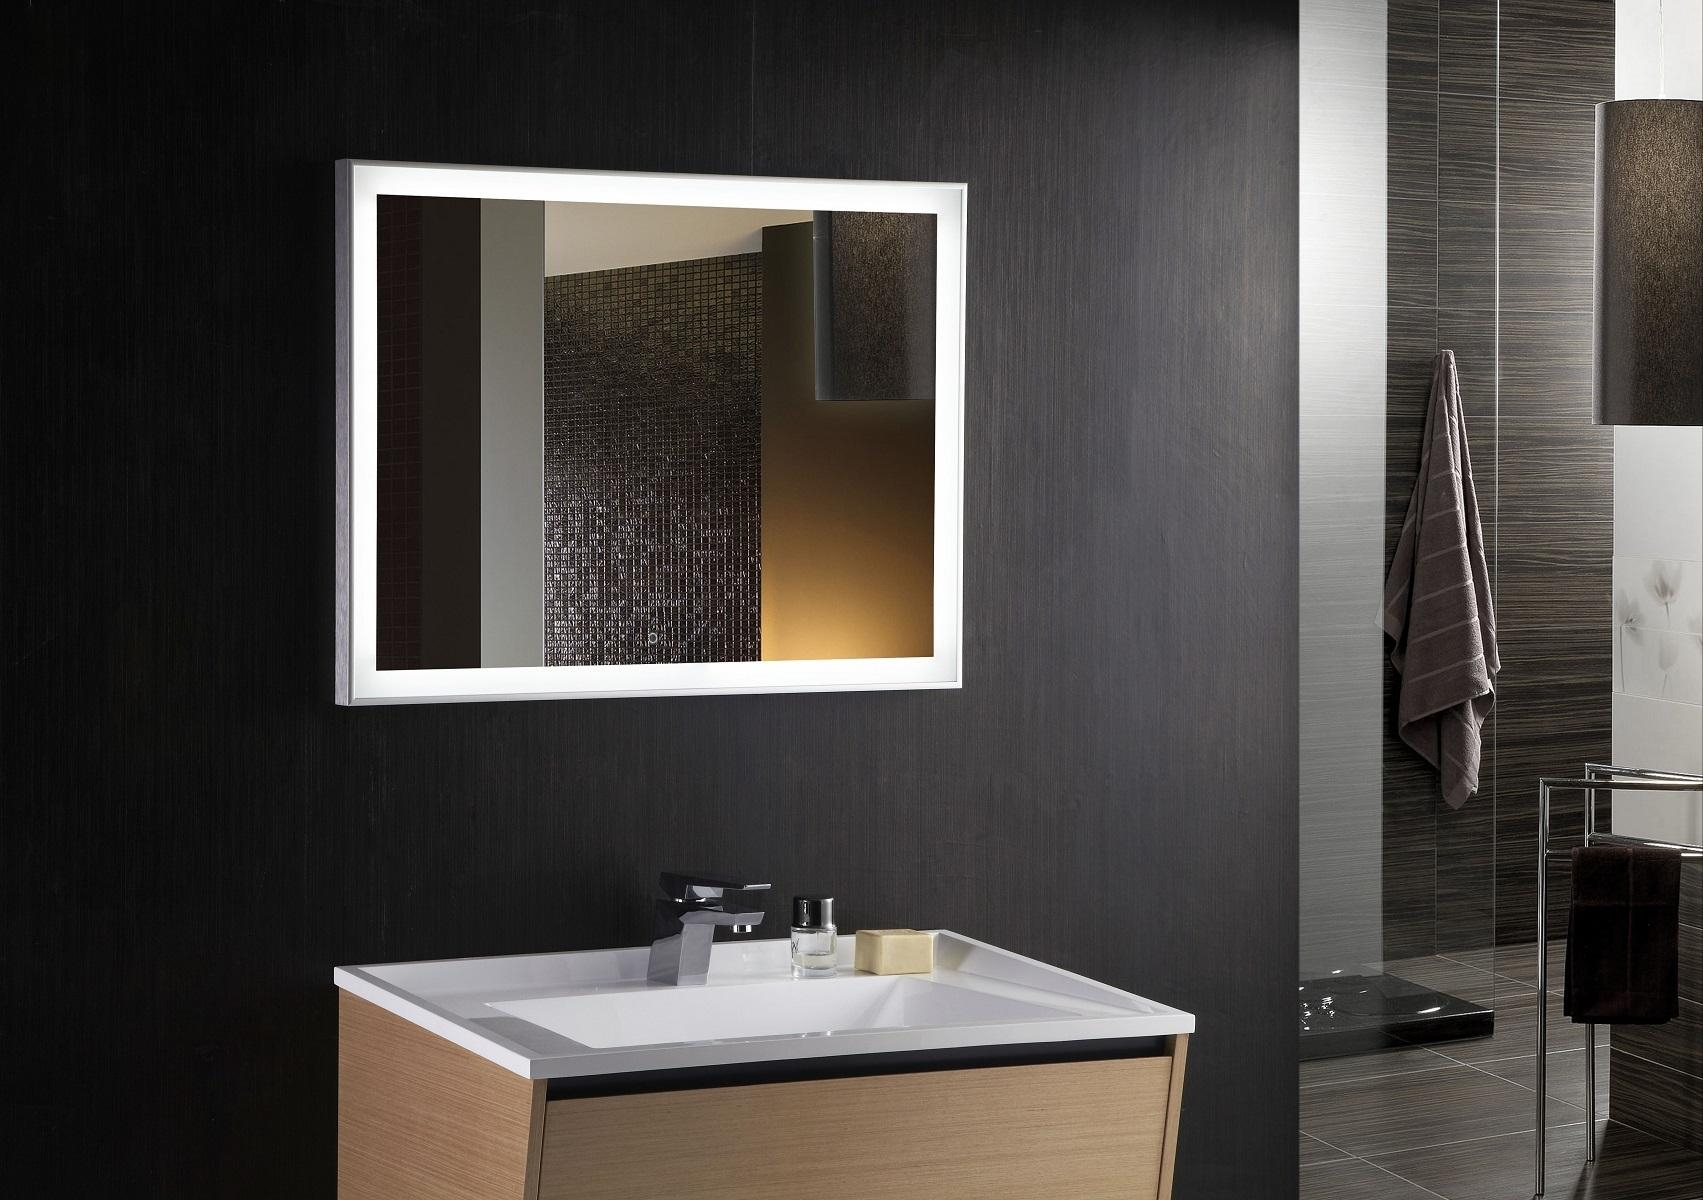 Fascinating Lighted Bathroom Mirrors Led Illuminated Mirror With In Led Illuminated Bathroom Mirrors (Image 14 of 20)